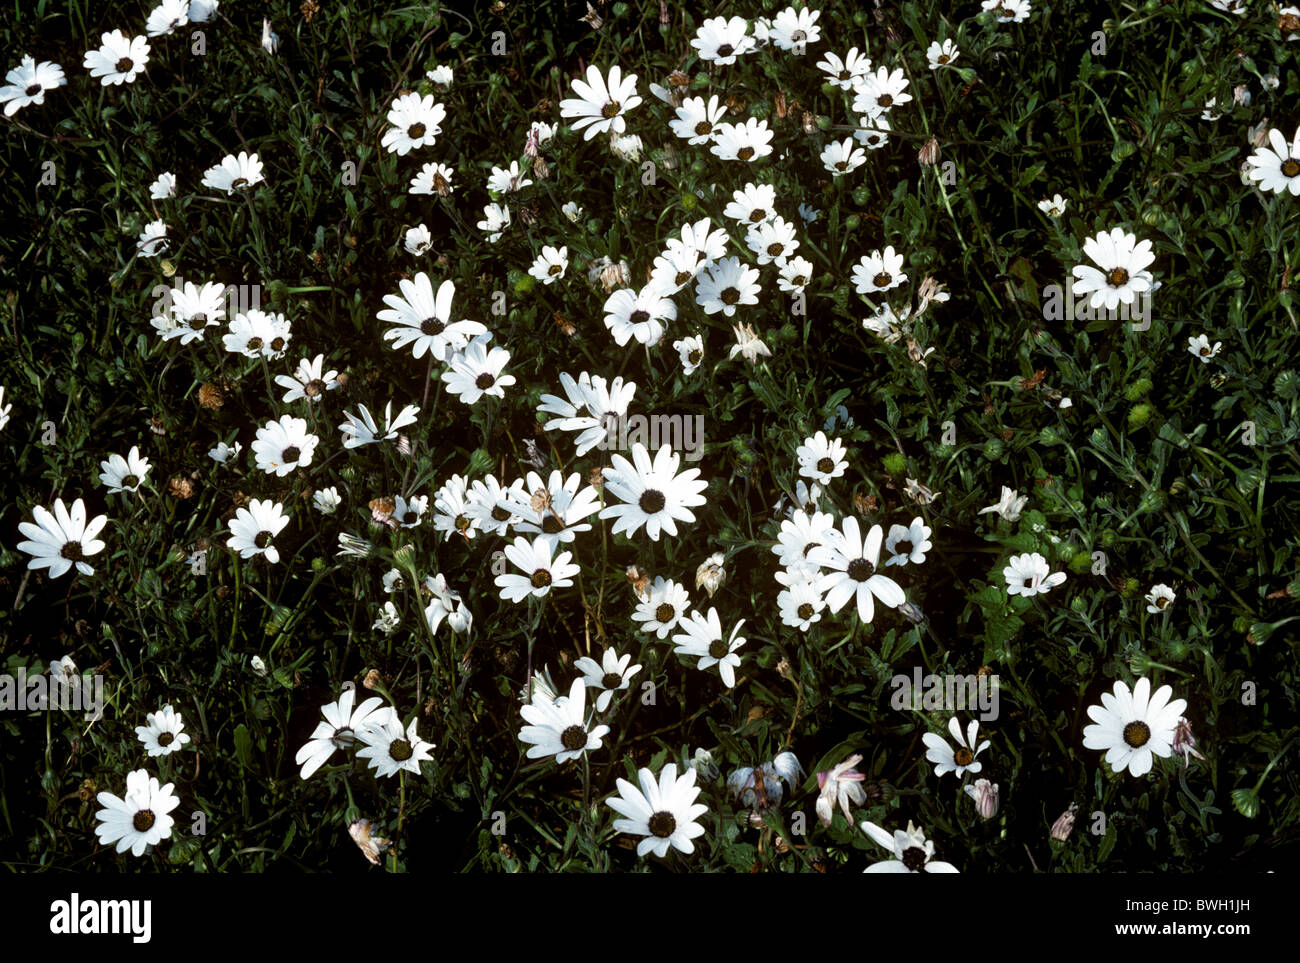 Rain daisy (Dimorphotheca pluvialis) flower only opens in dry weather - Stock Image